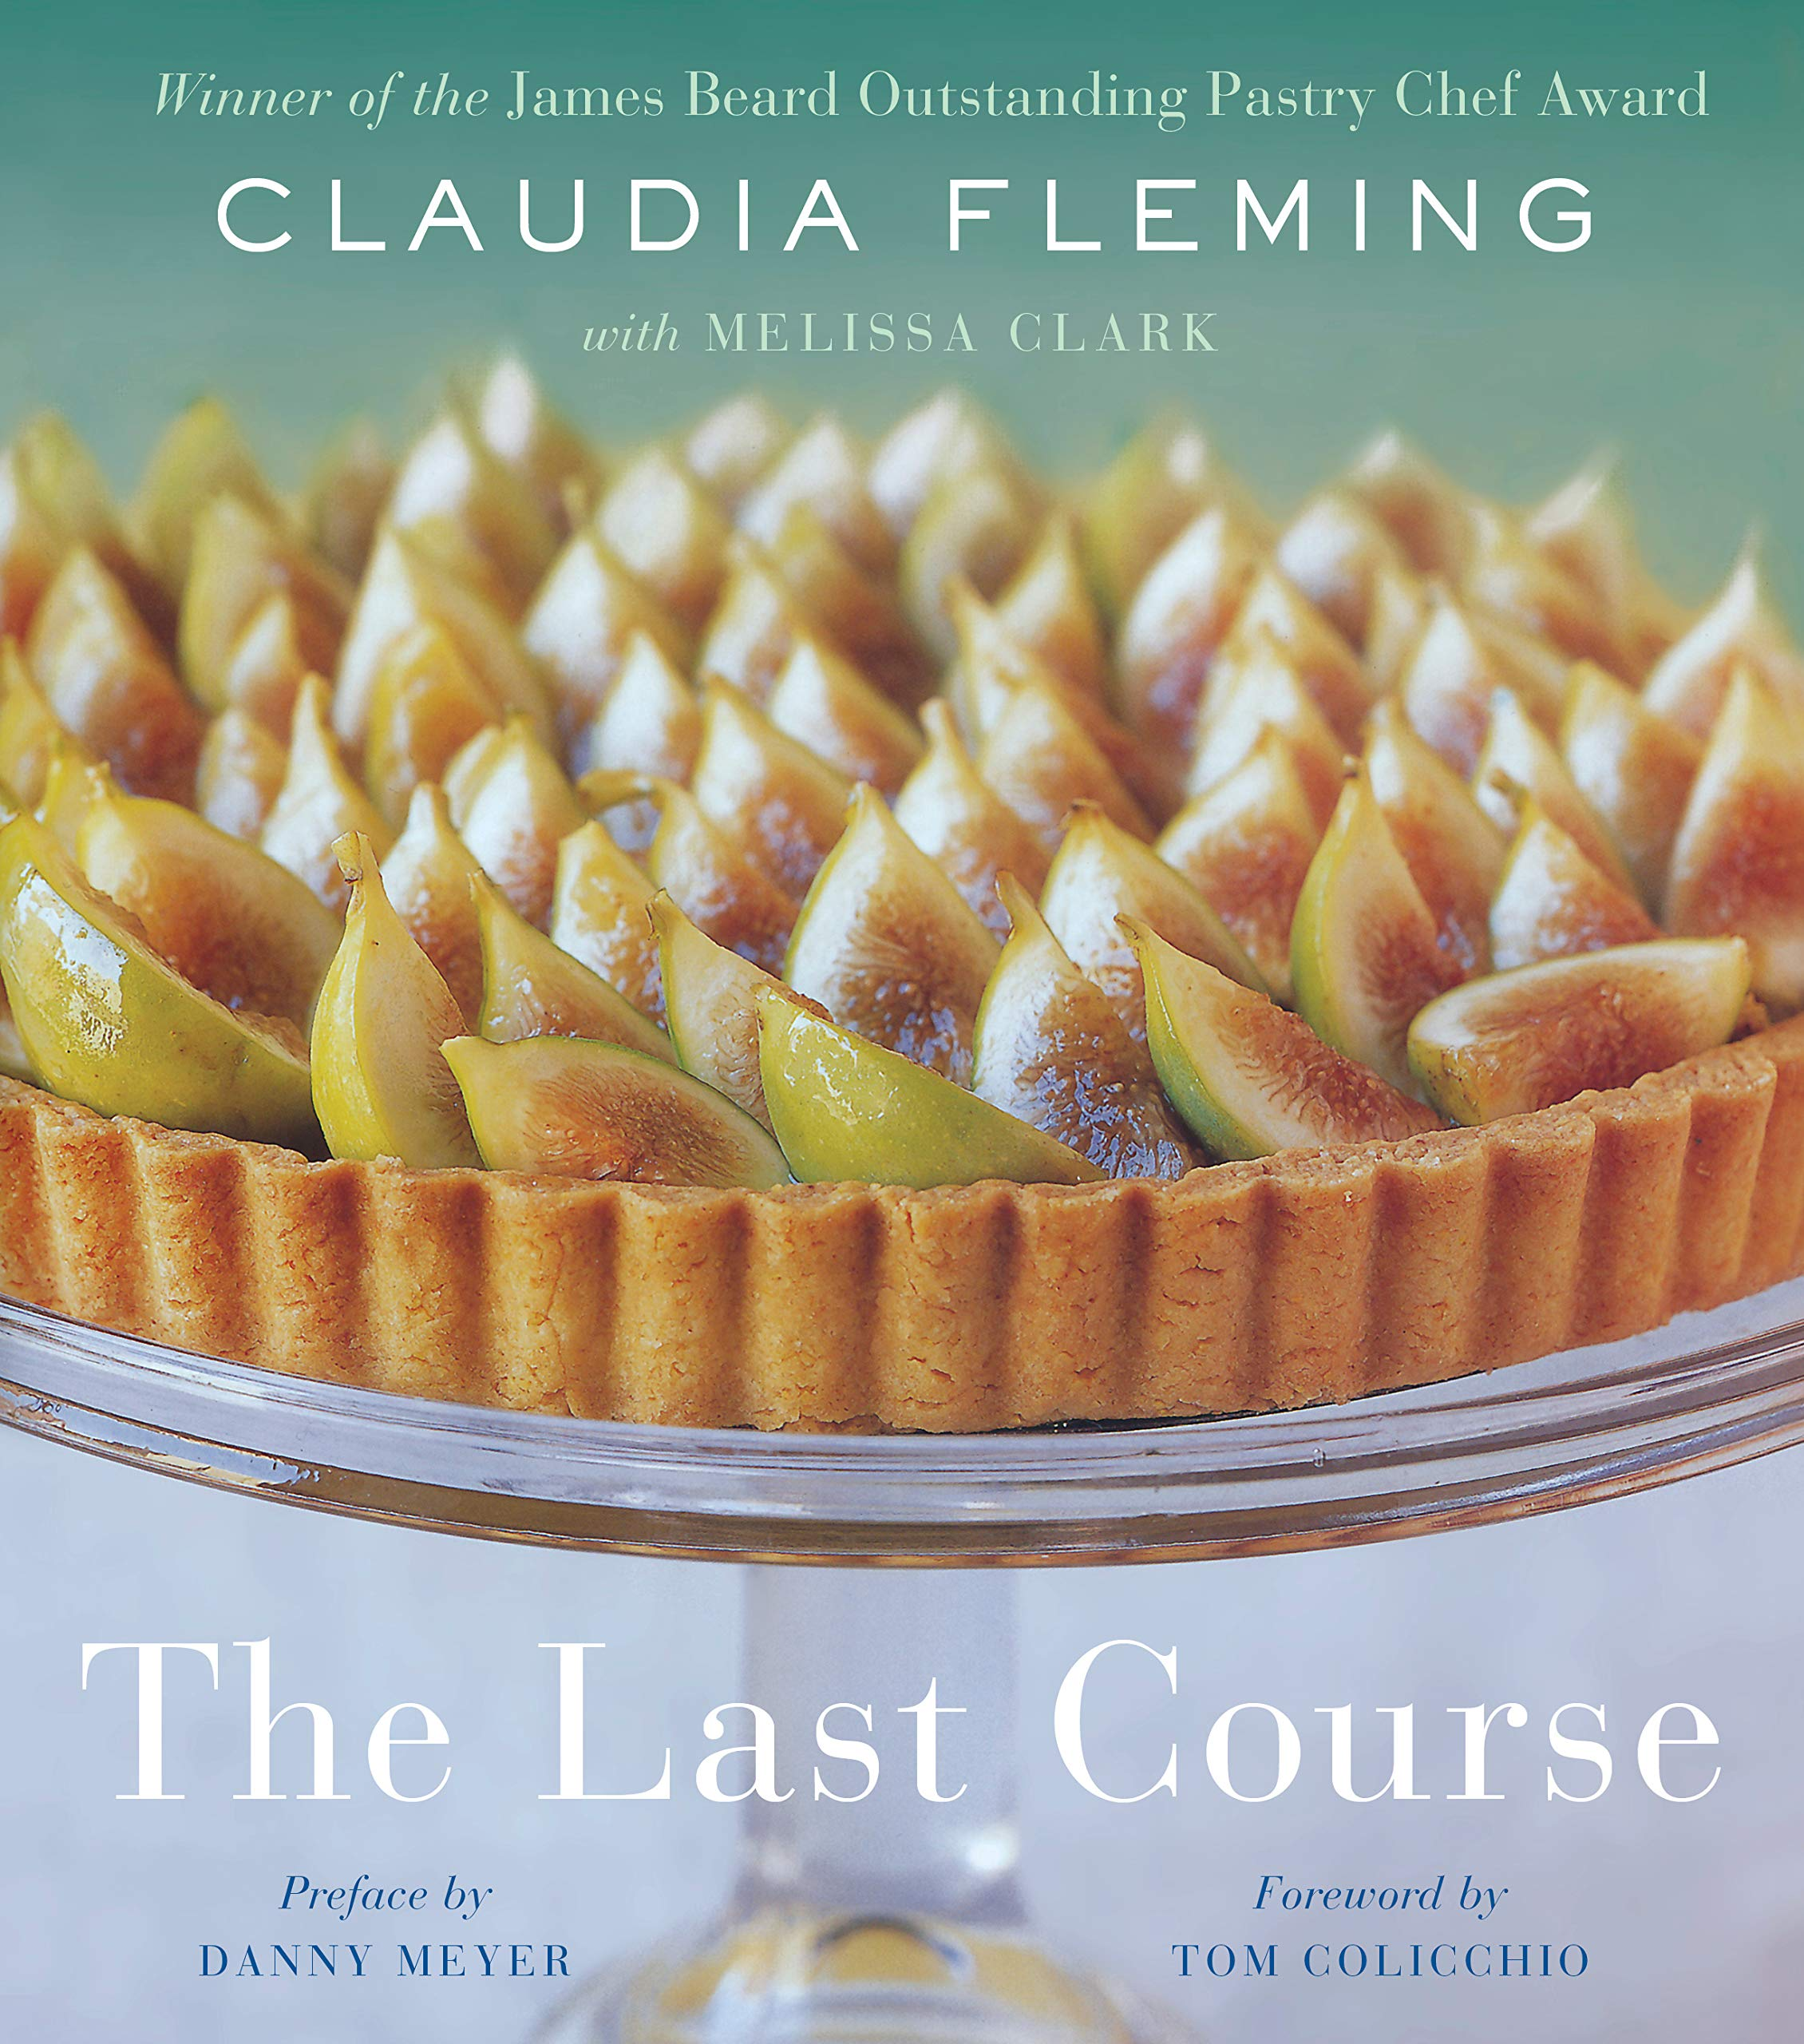 The Last Course: The Desserts of Gramercy Tavern by Random House